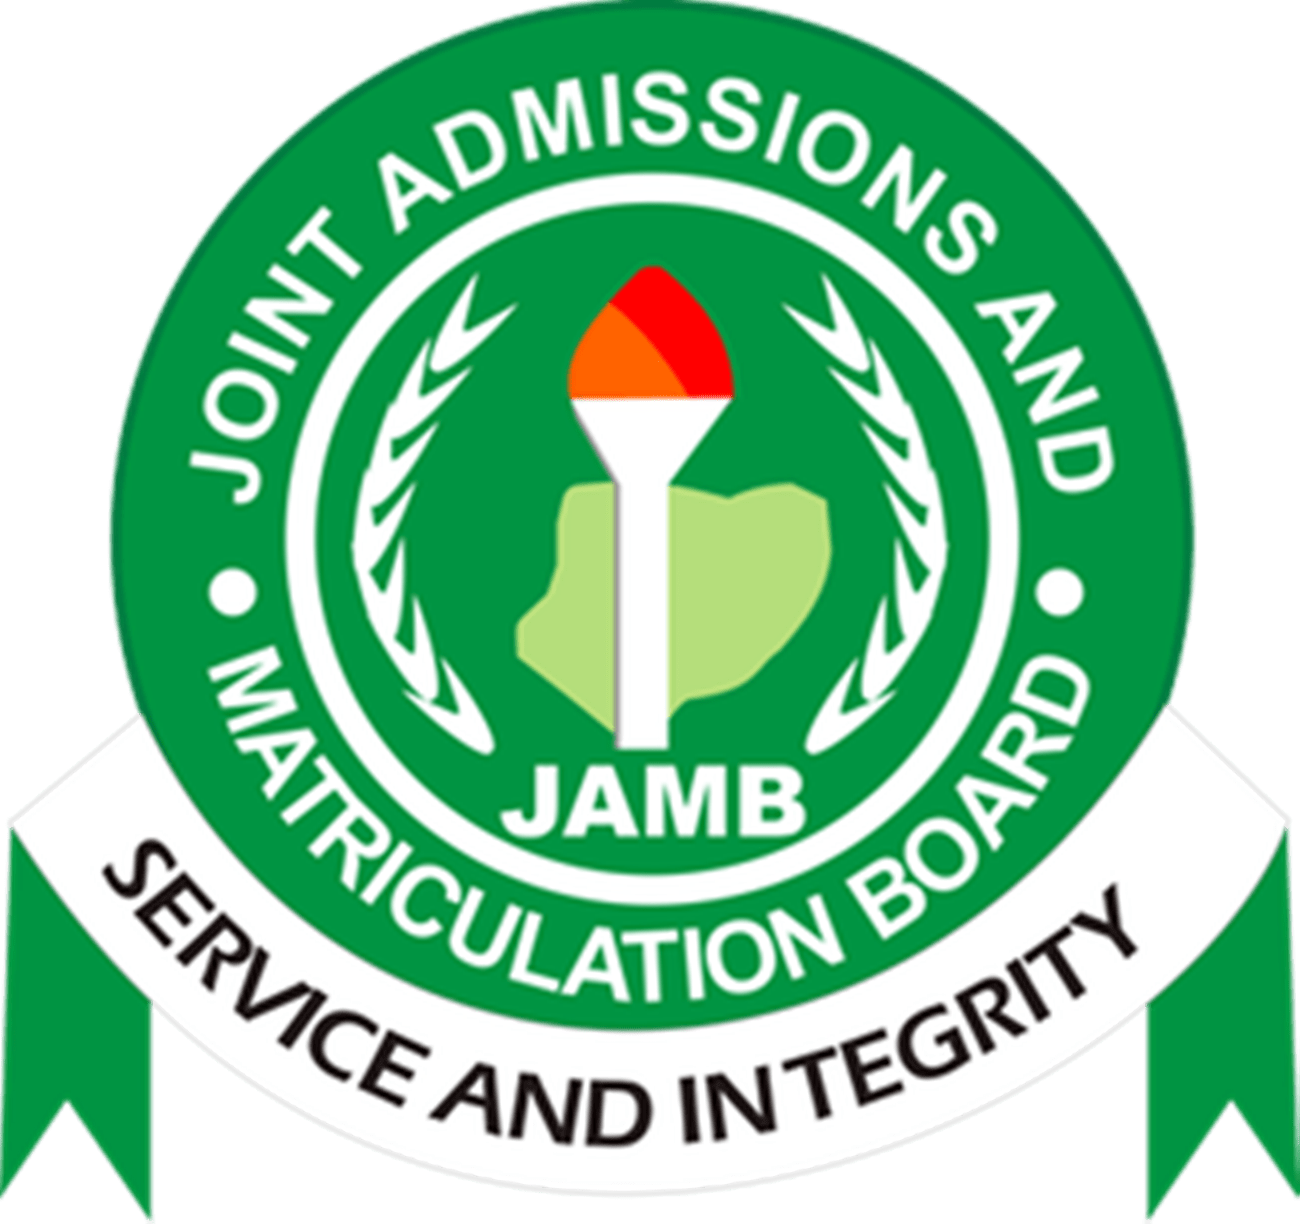 JAMB releases list of top 10 candidates in the 2020 Unified Tertiary Matriculation Examination